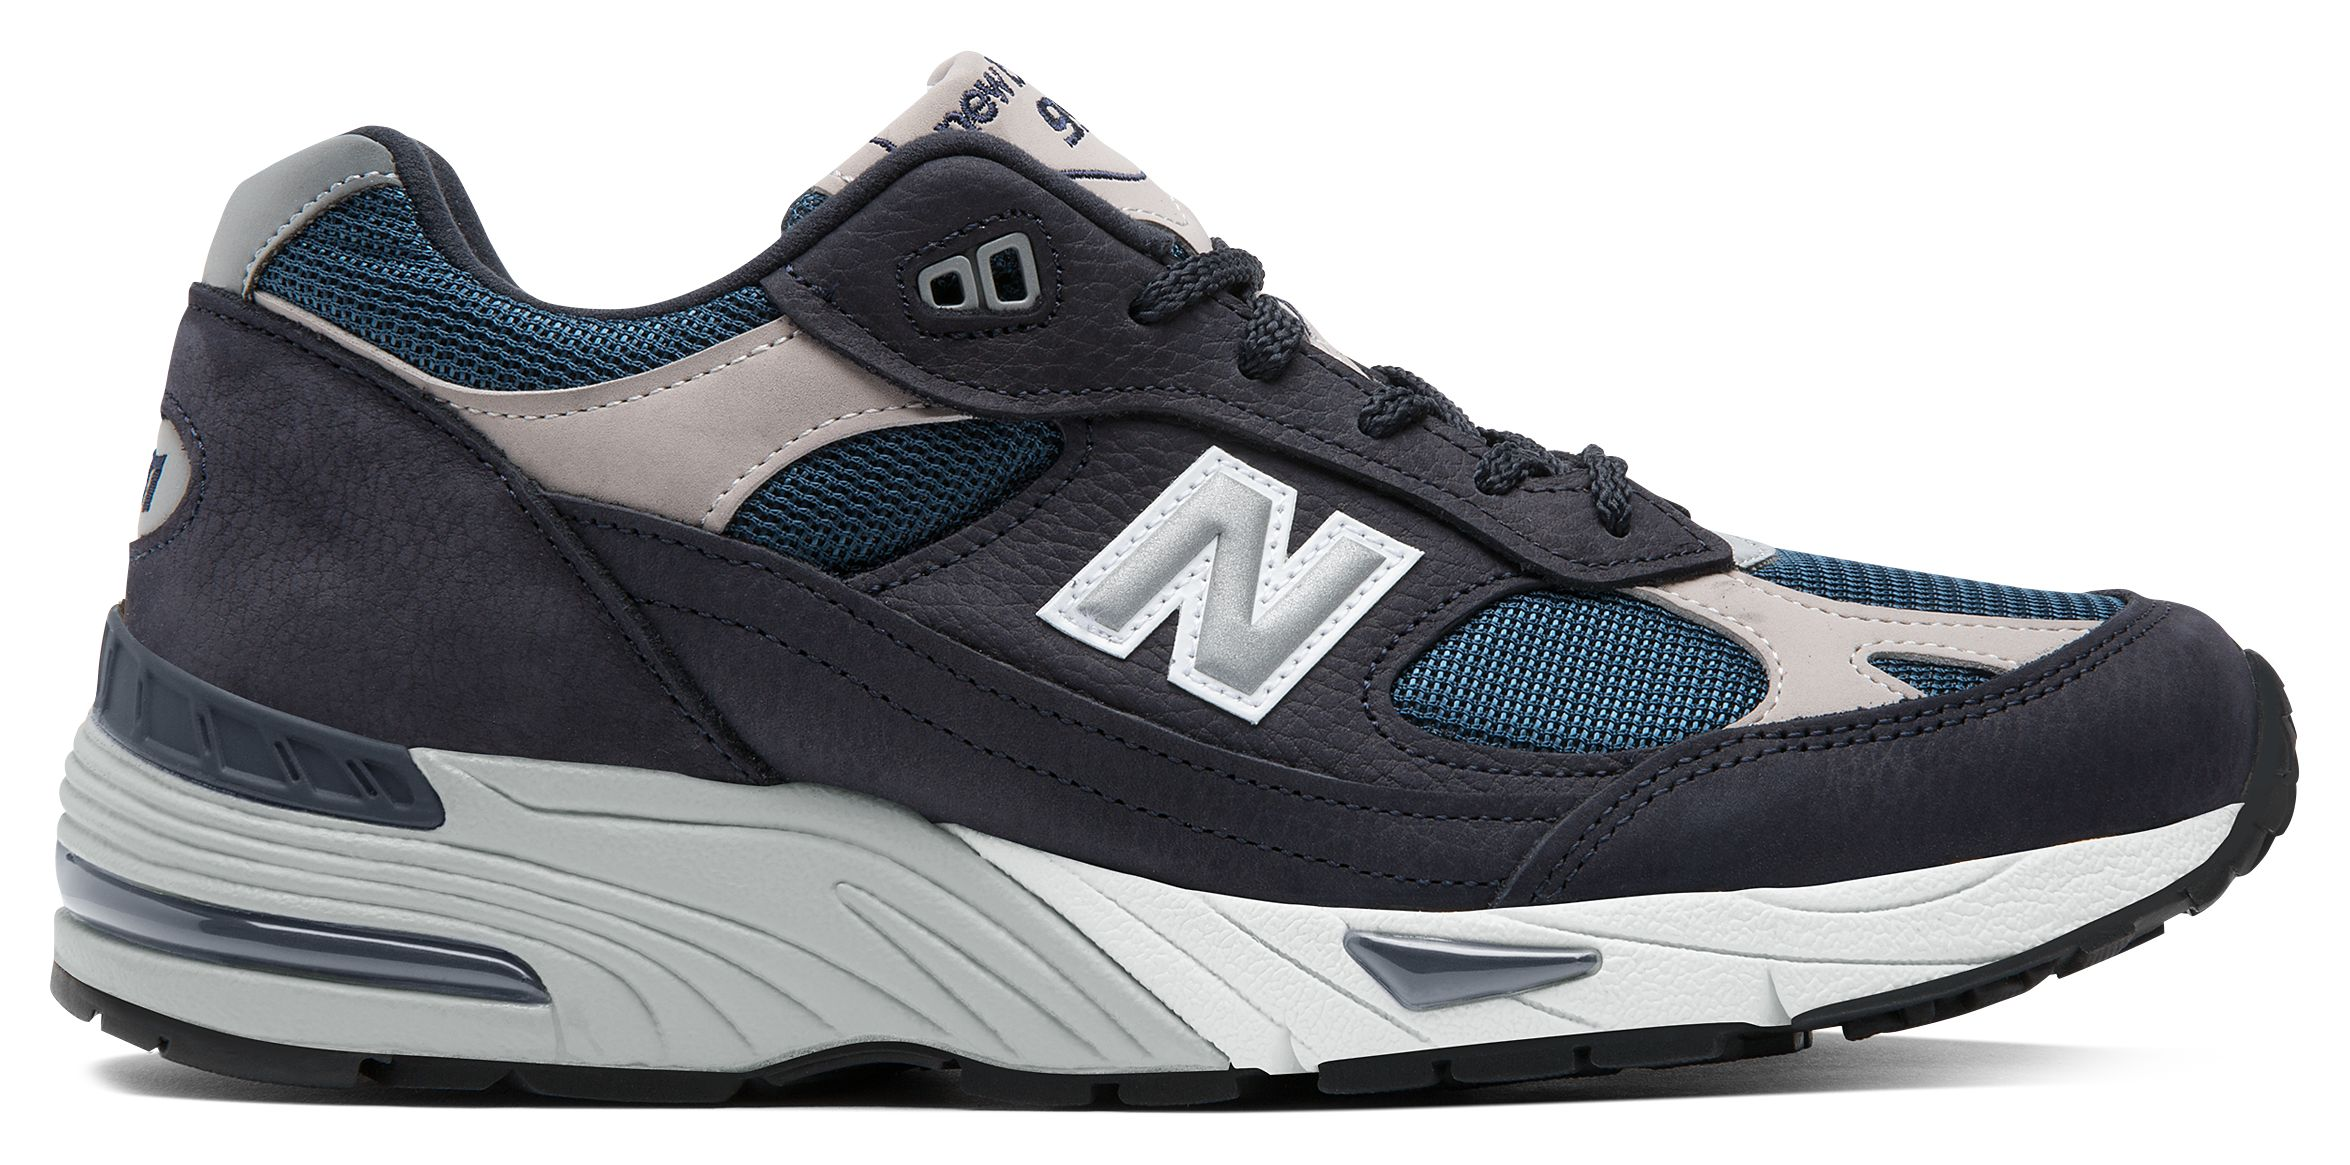 NB 991 Made in UK, Navy with Grey